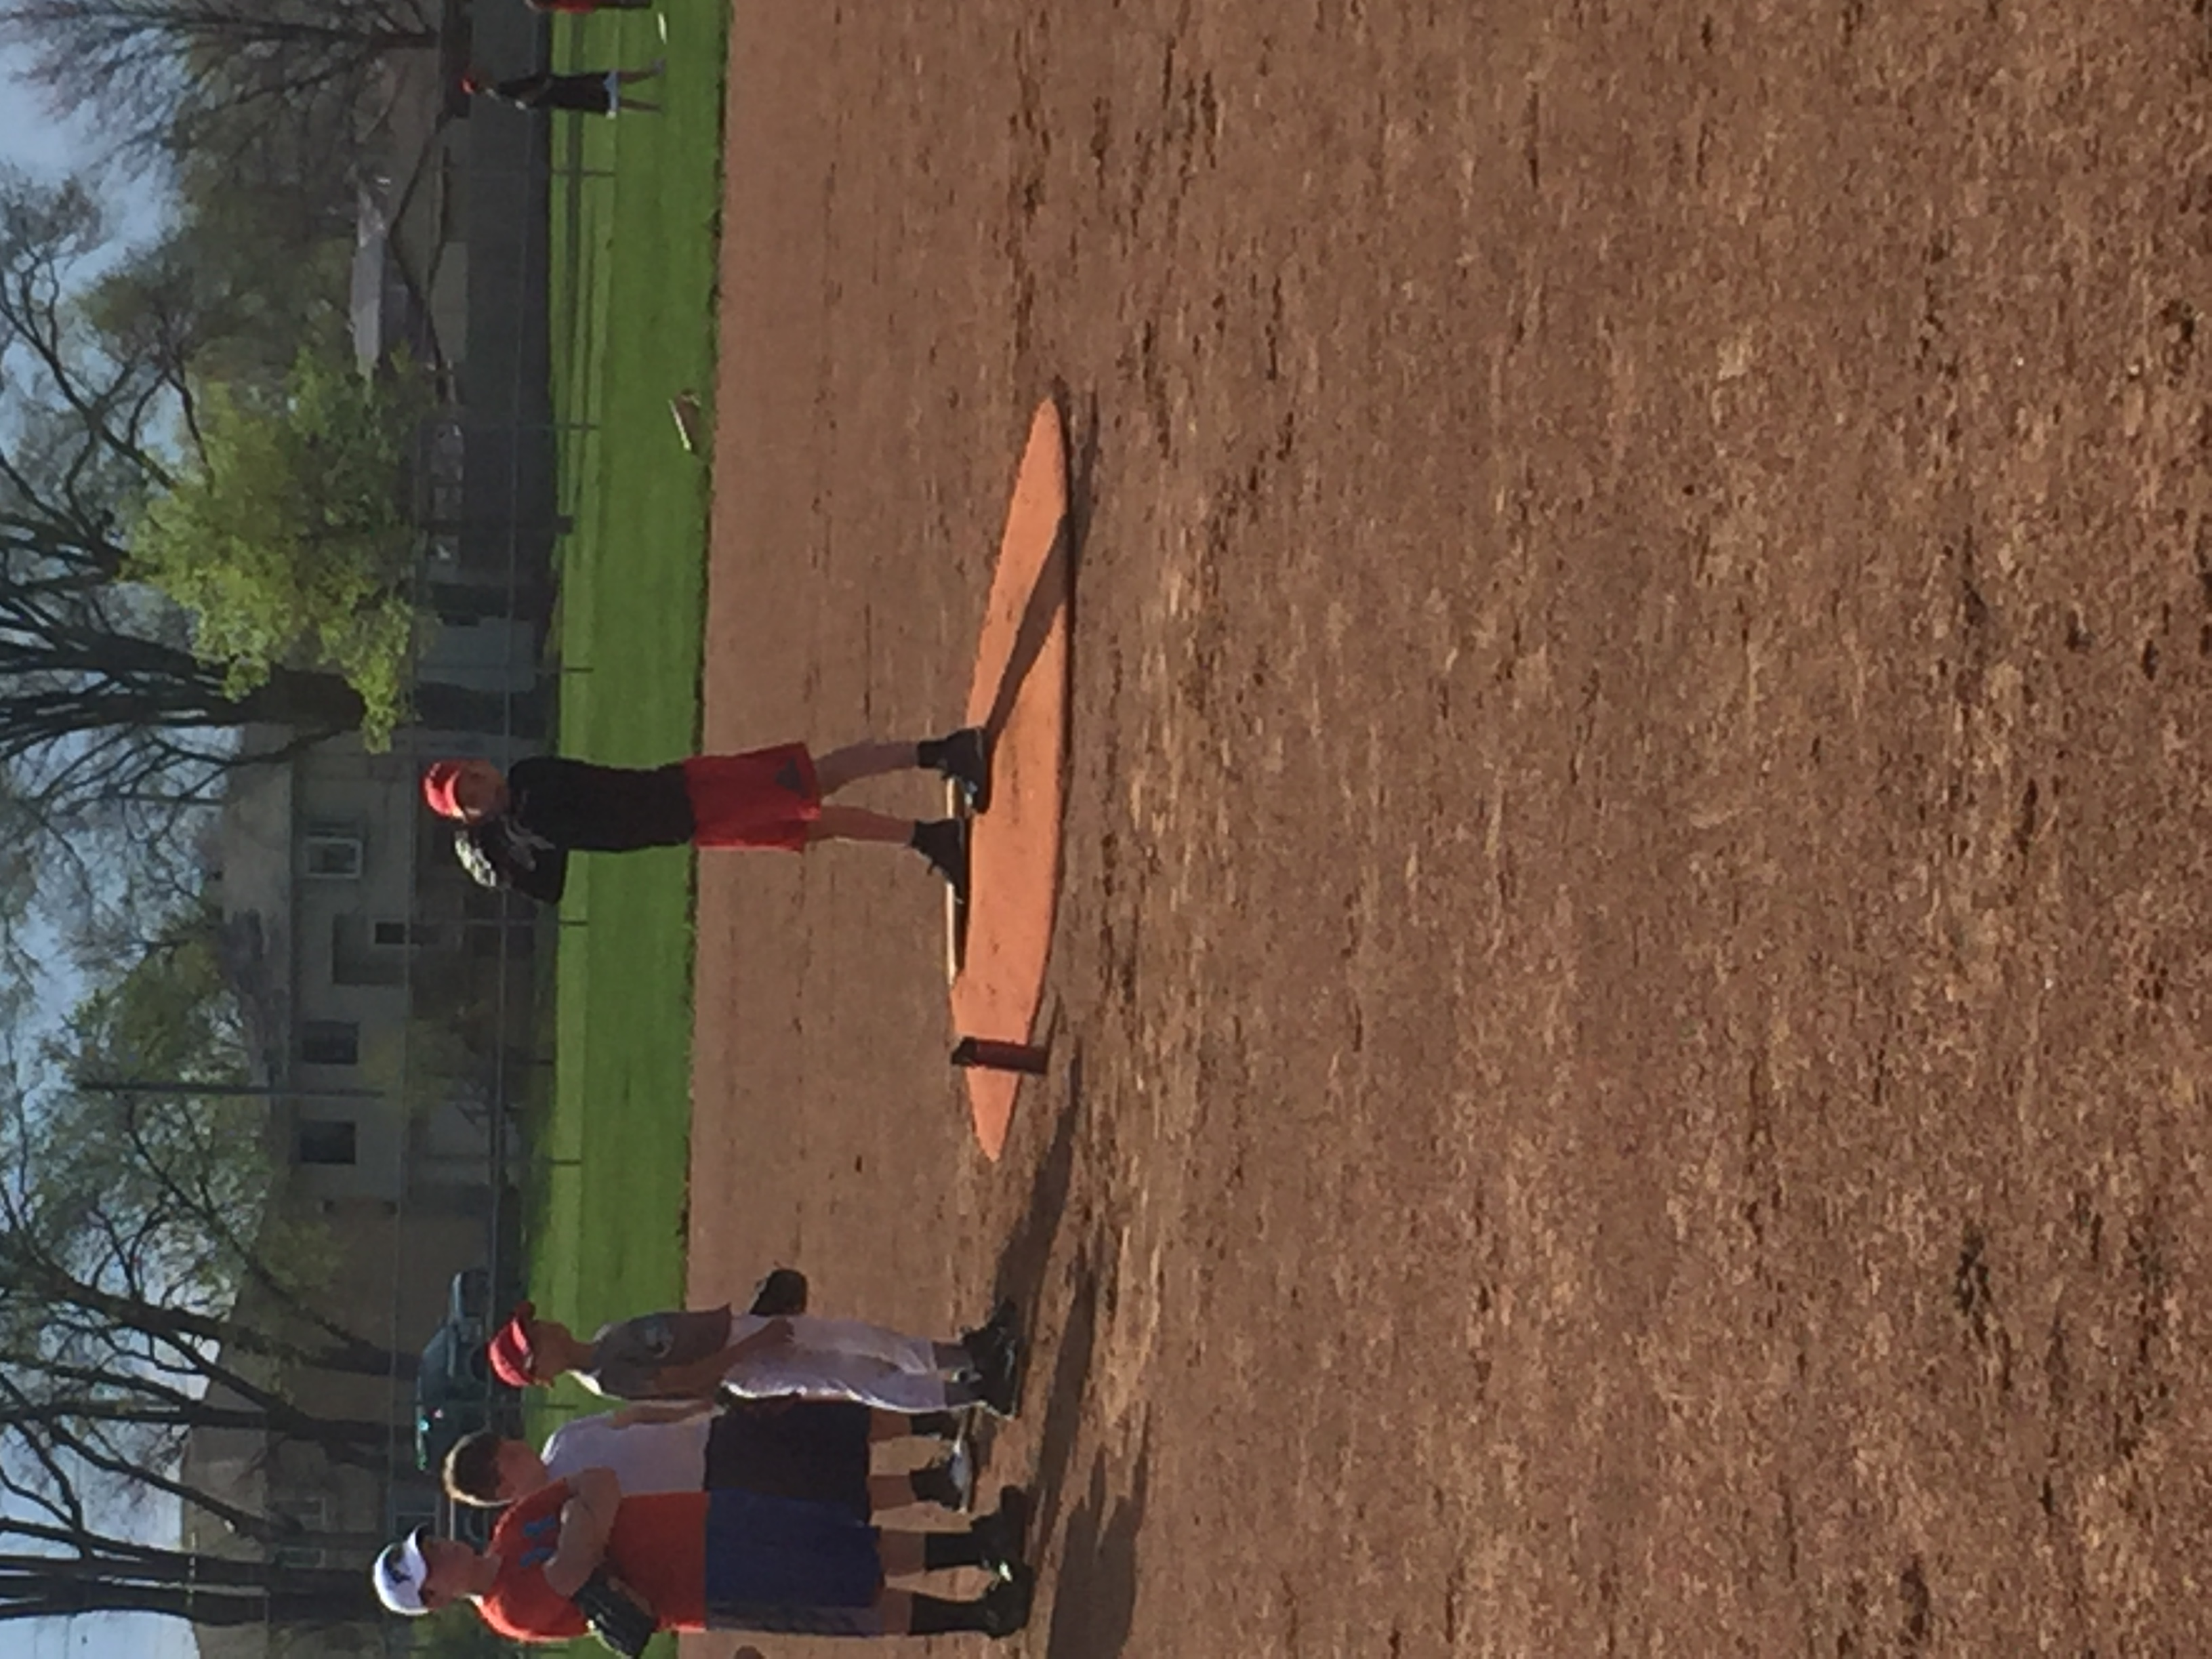 Pitching Practice